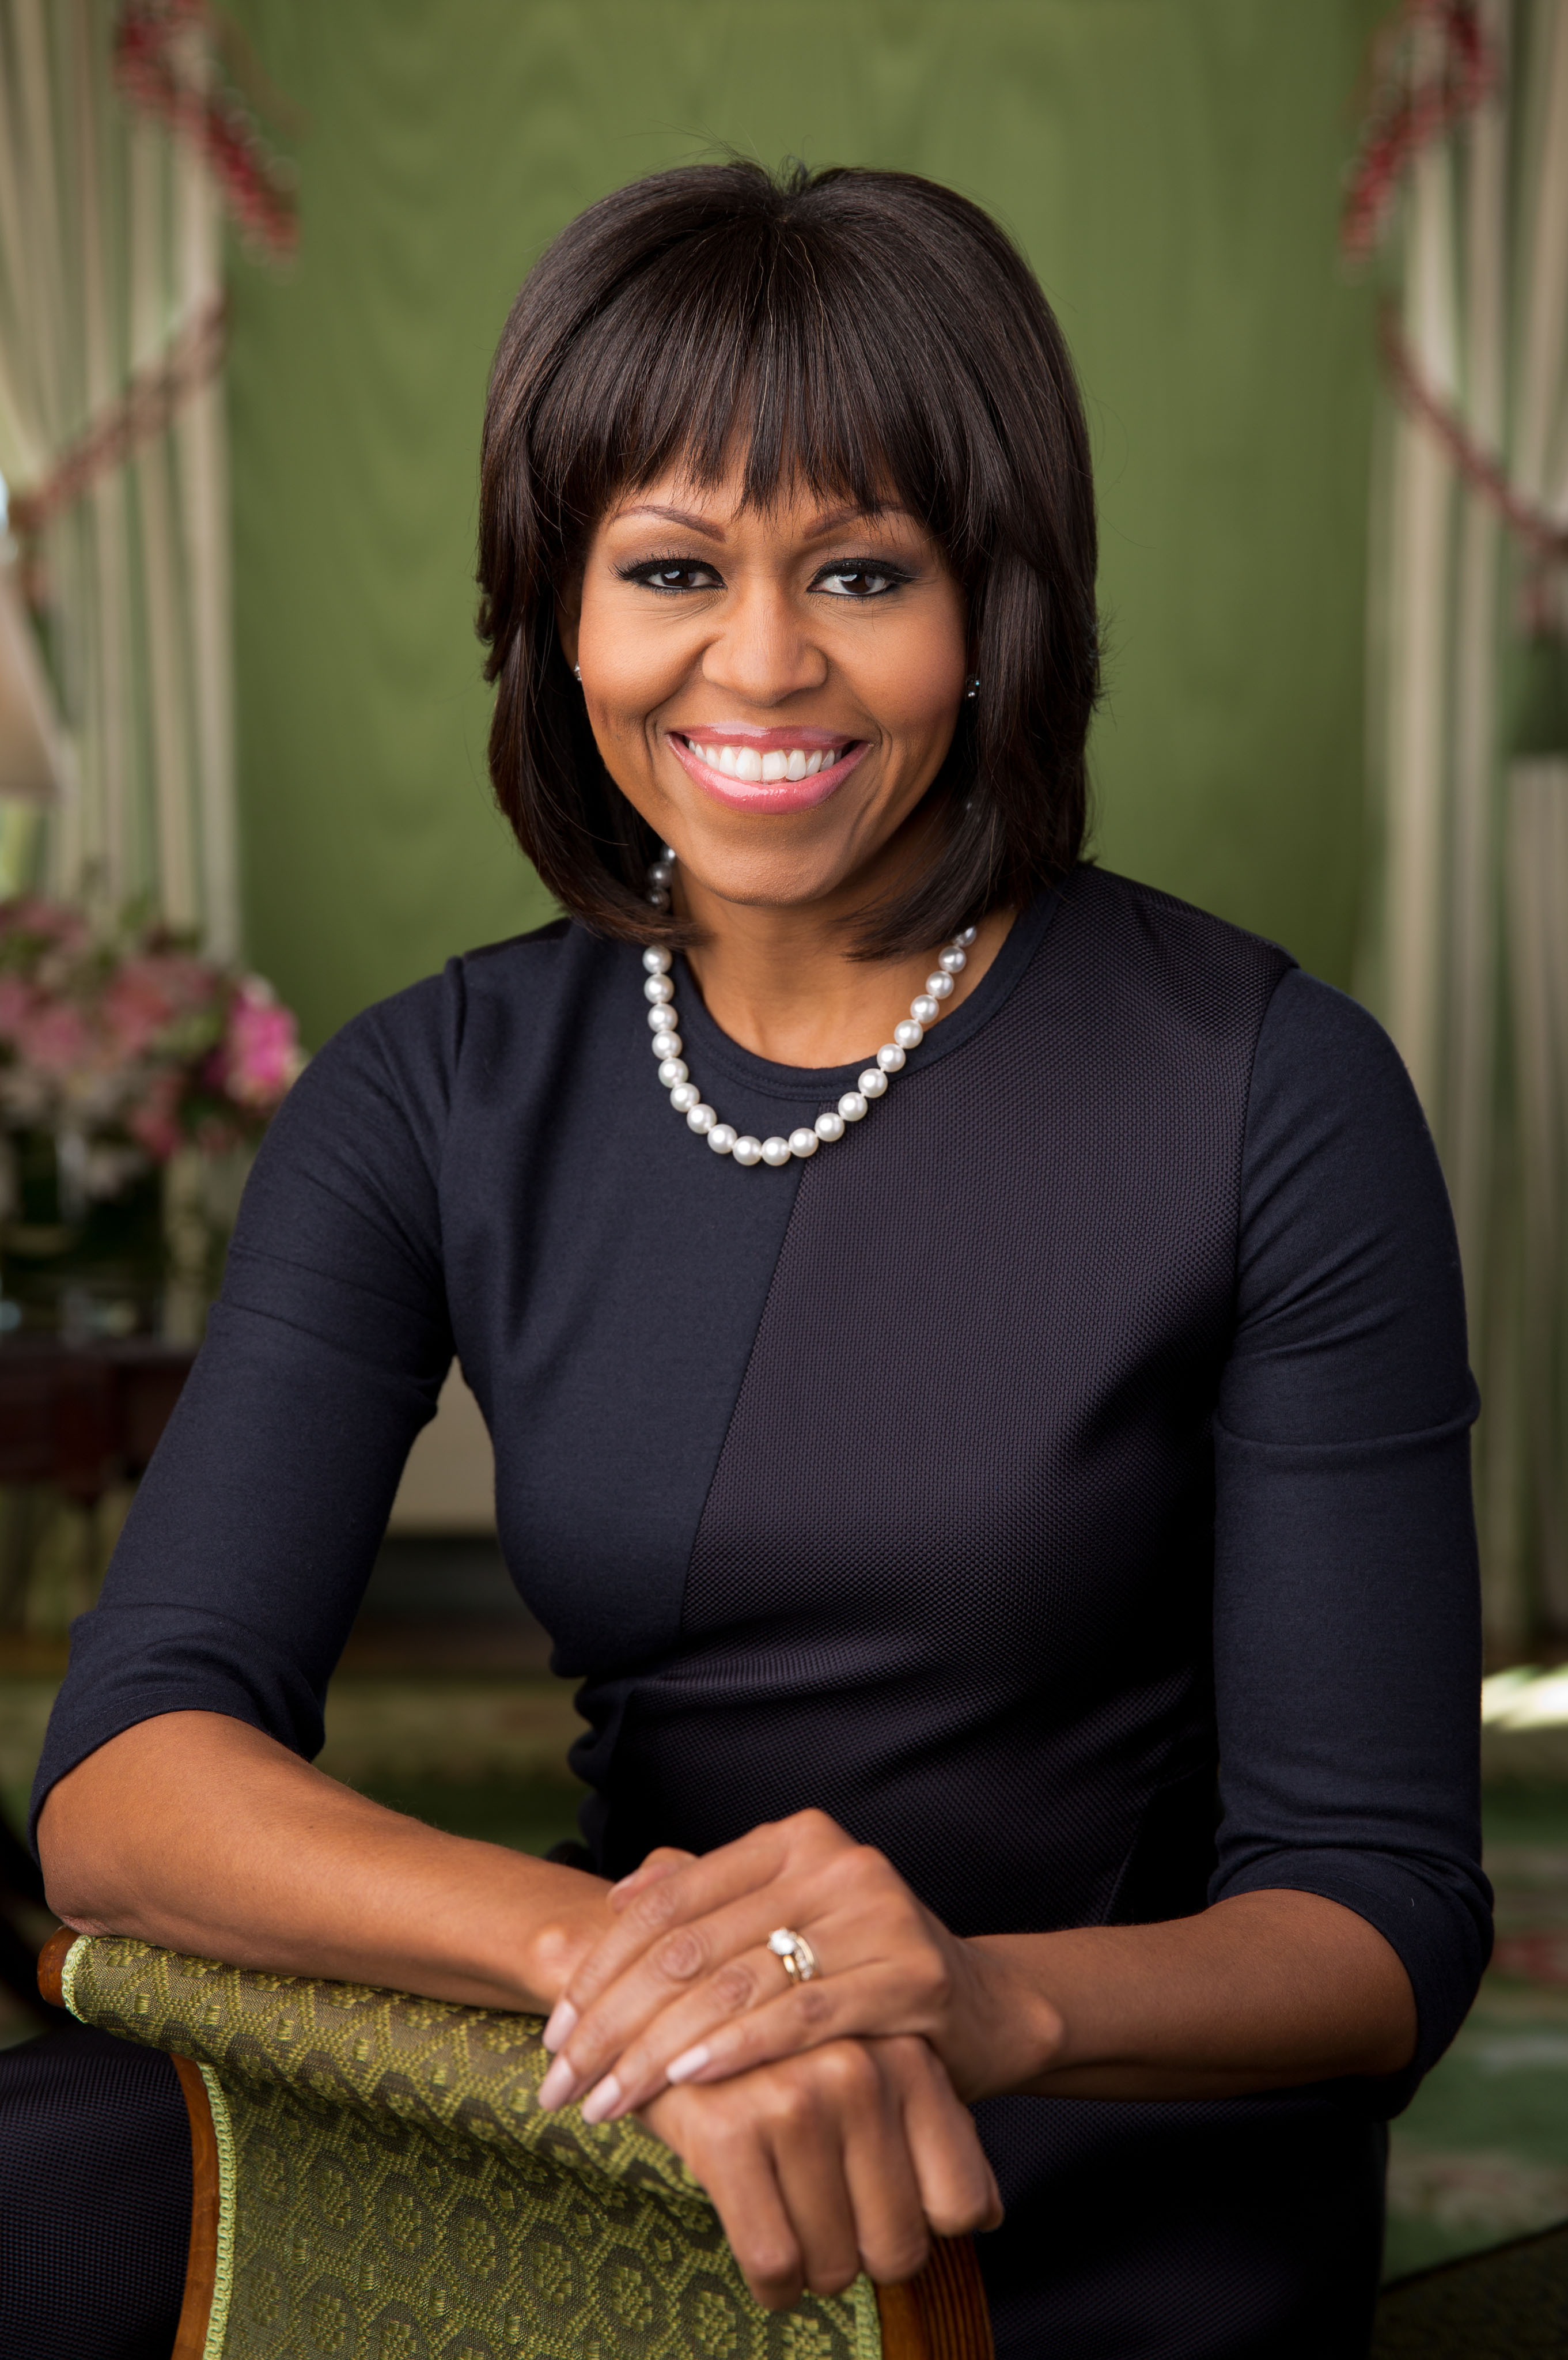 michelle-obama-wife-of-america-president-obama